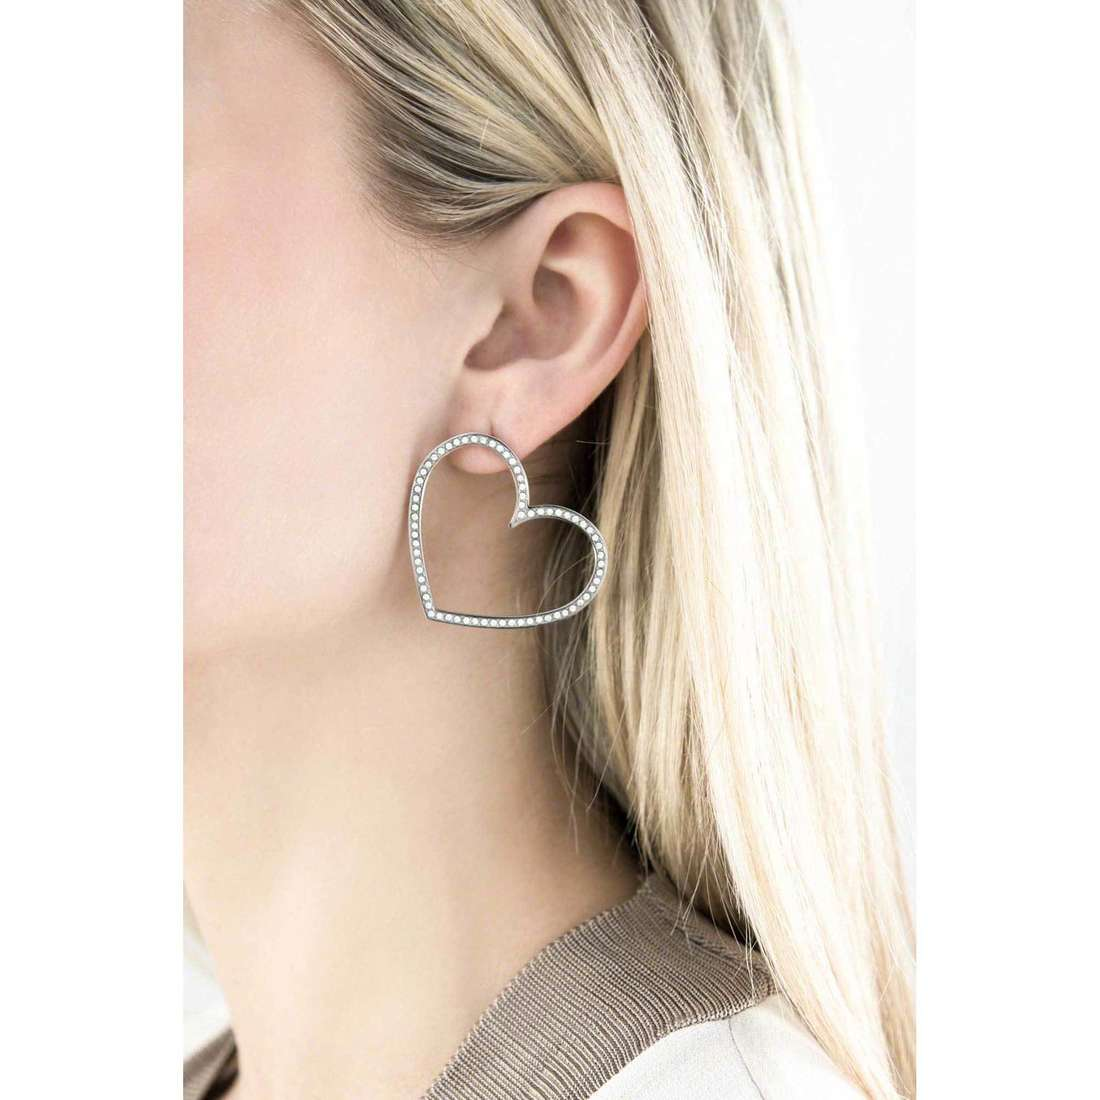 Brosway boucles d'oreille Minuetto femme BMU21 indosso